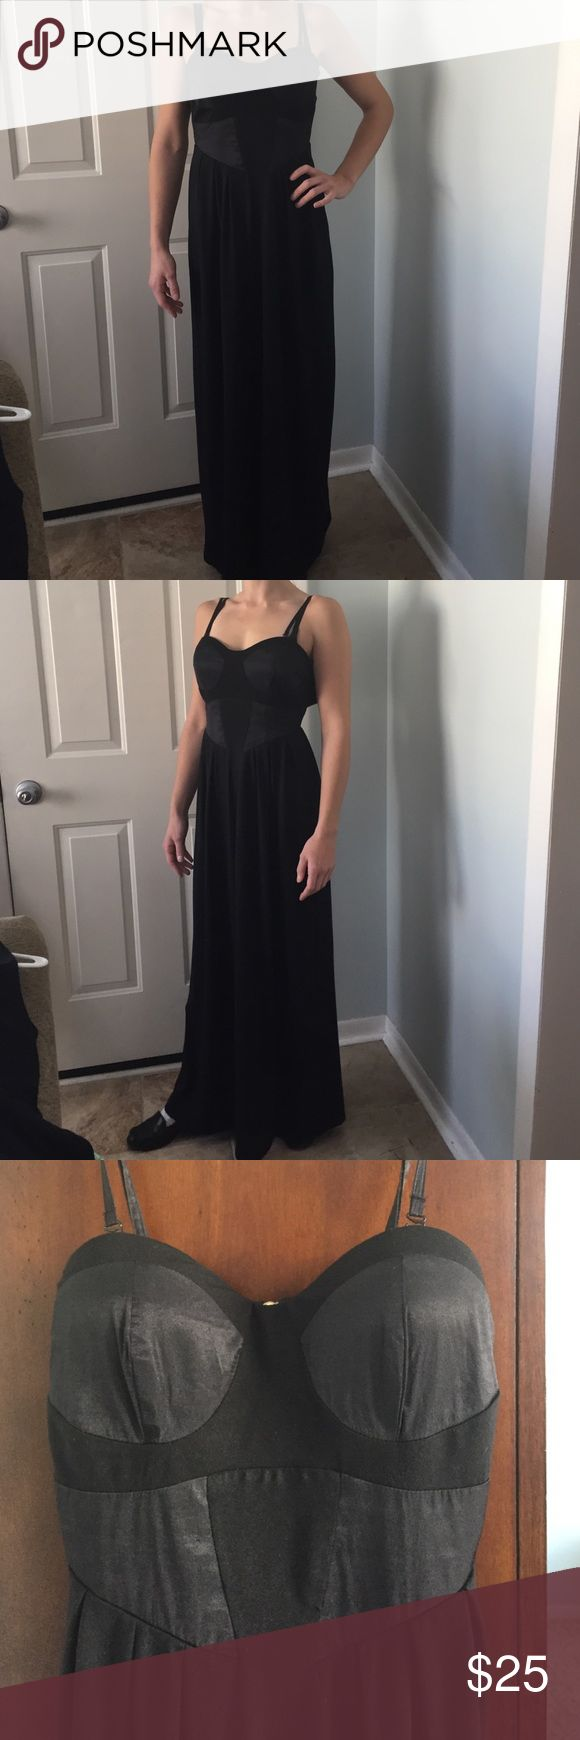 Size S Kardashian Kollection fall 2011 dress Size S Kardashian Kollection fall 2011 evening dress.  Perfect for that New Years Eve party!  Gently pre owned. Kardashian Kollection Dresses Maxi